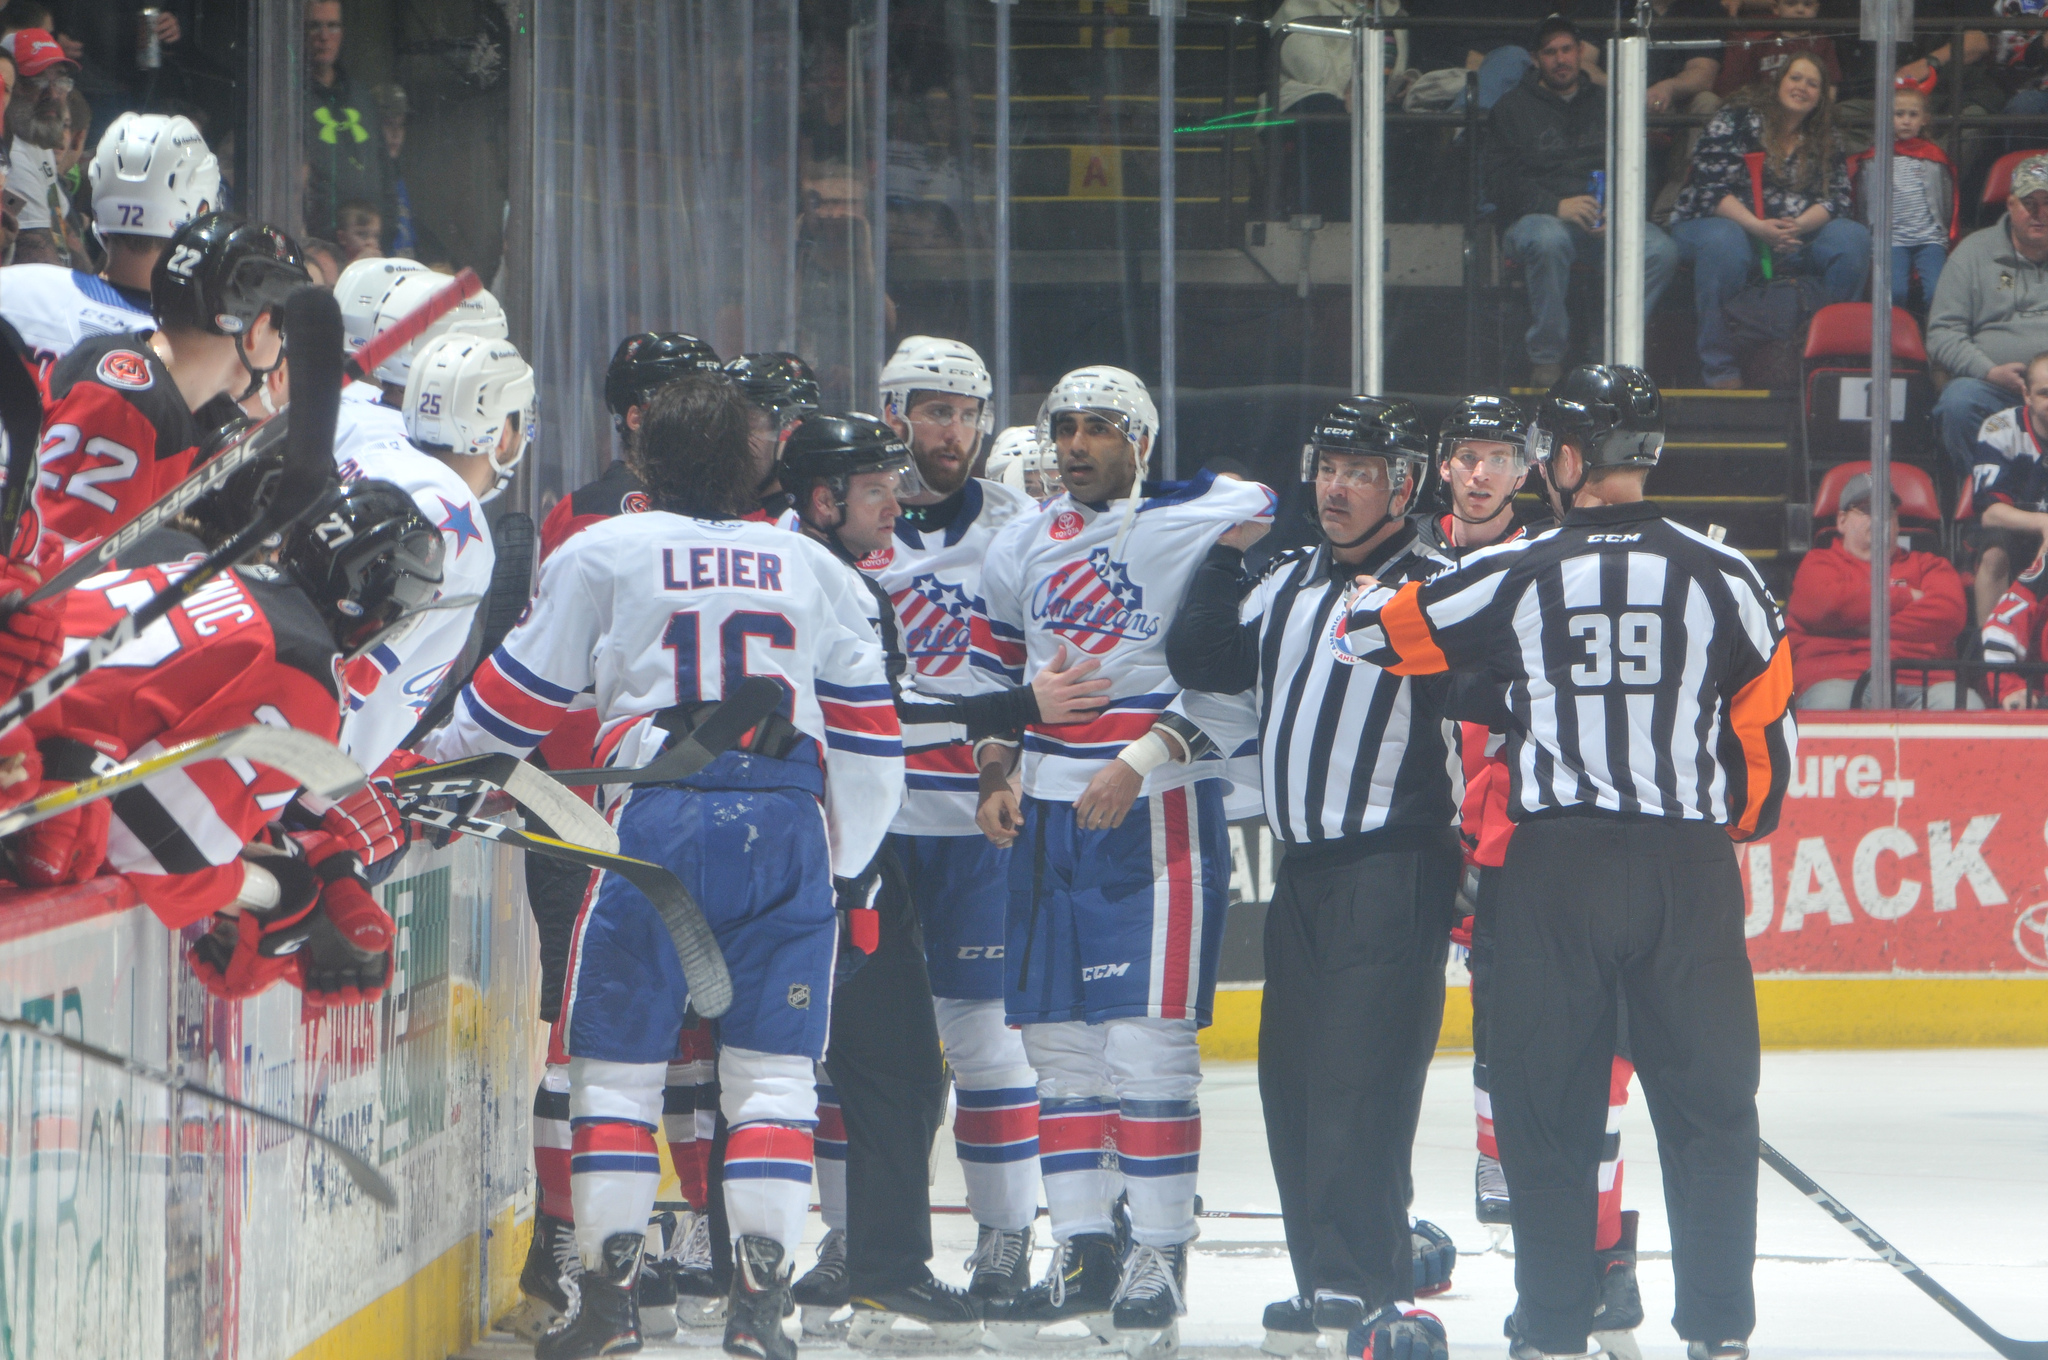 Amerks Punched Their Playoff Ticket with a Comeback Win